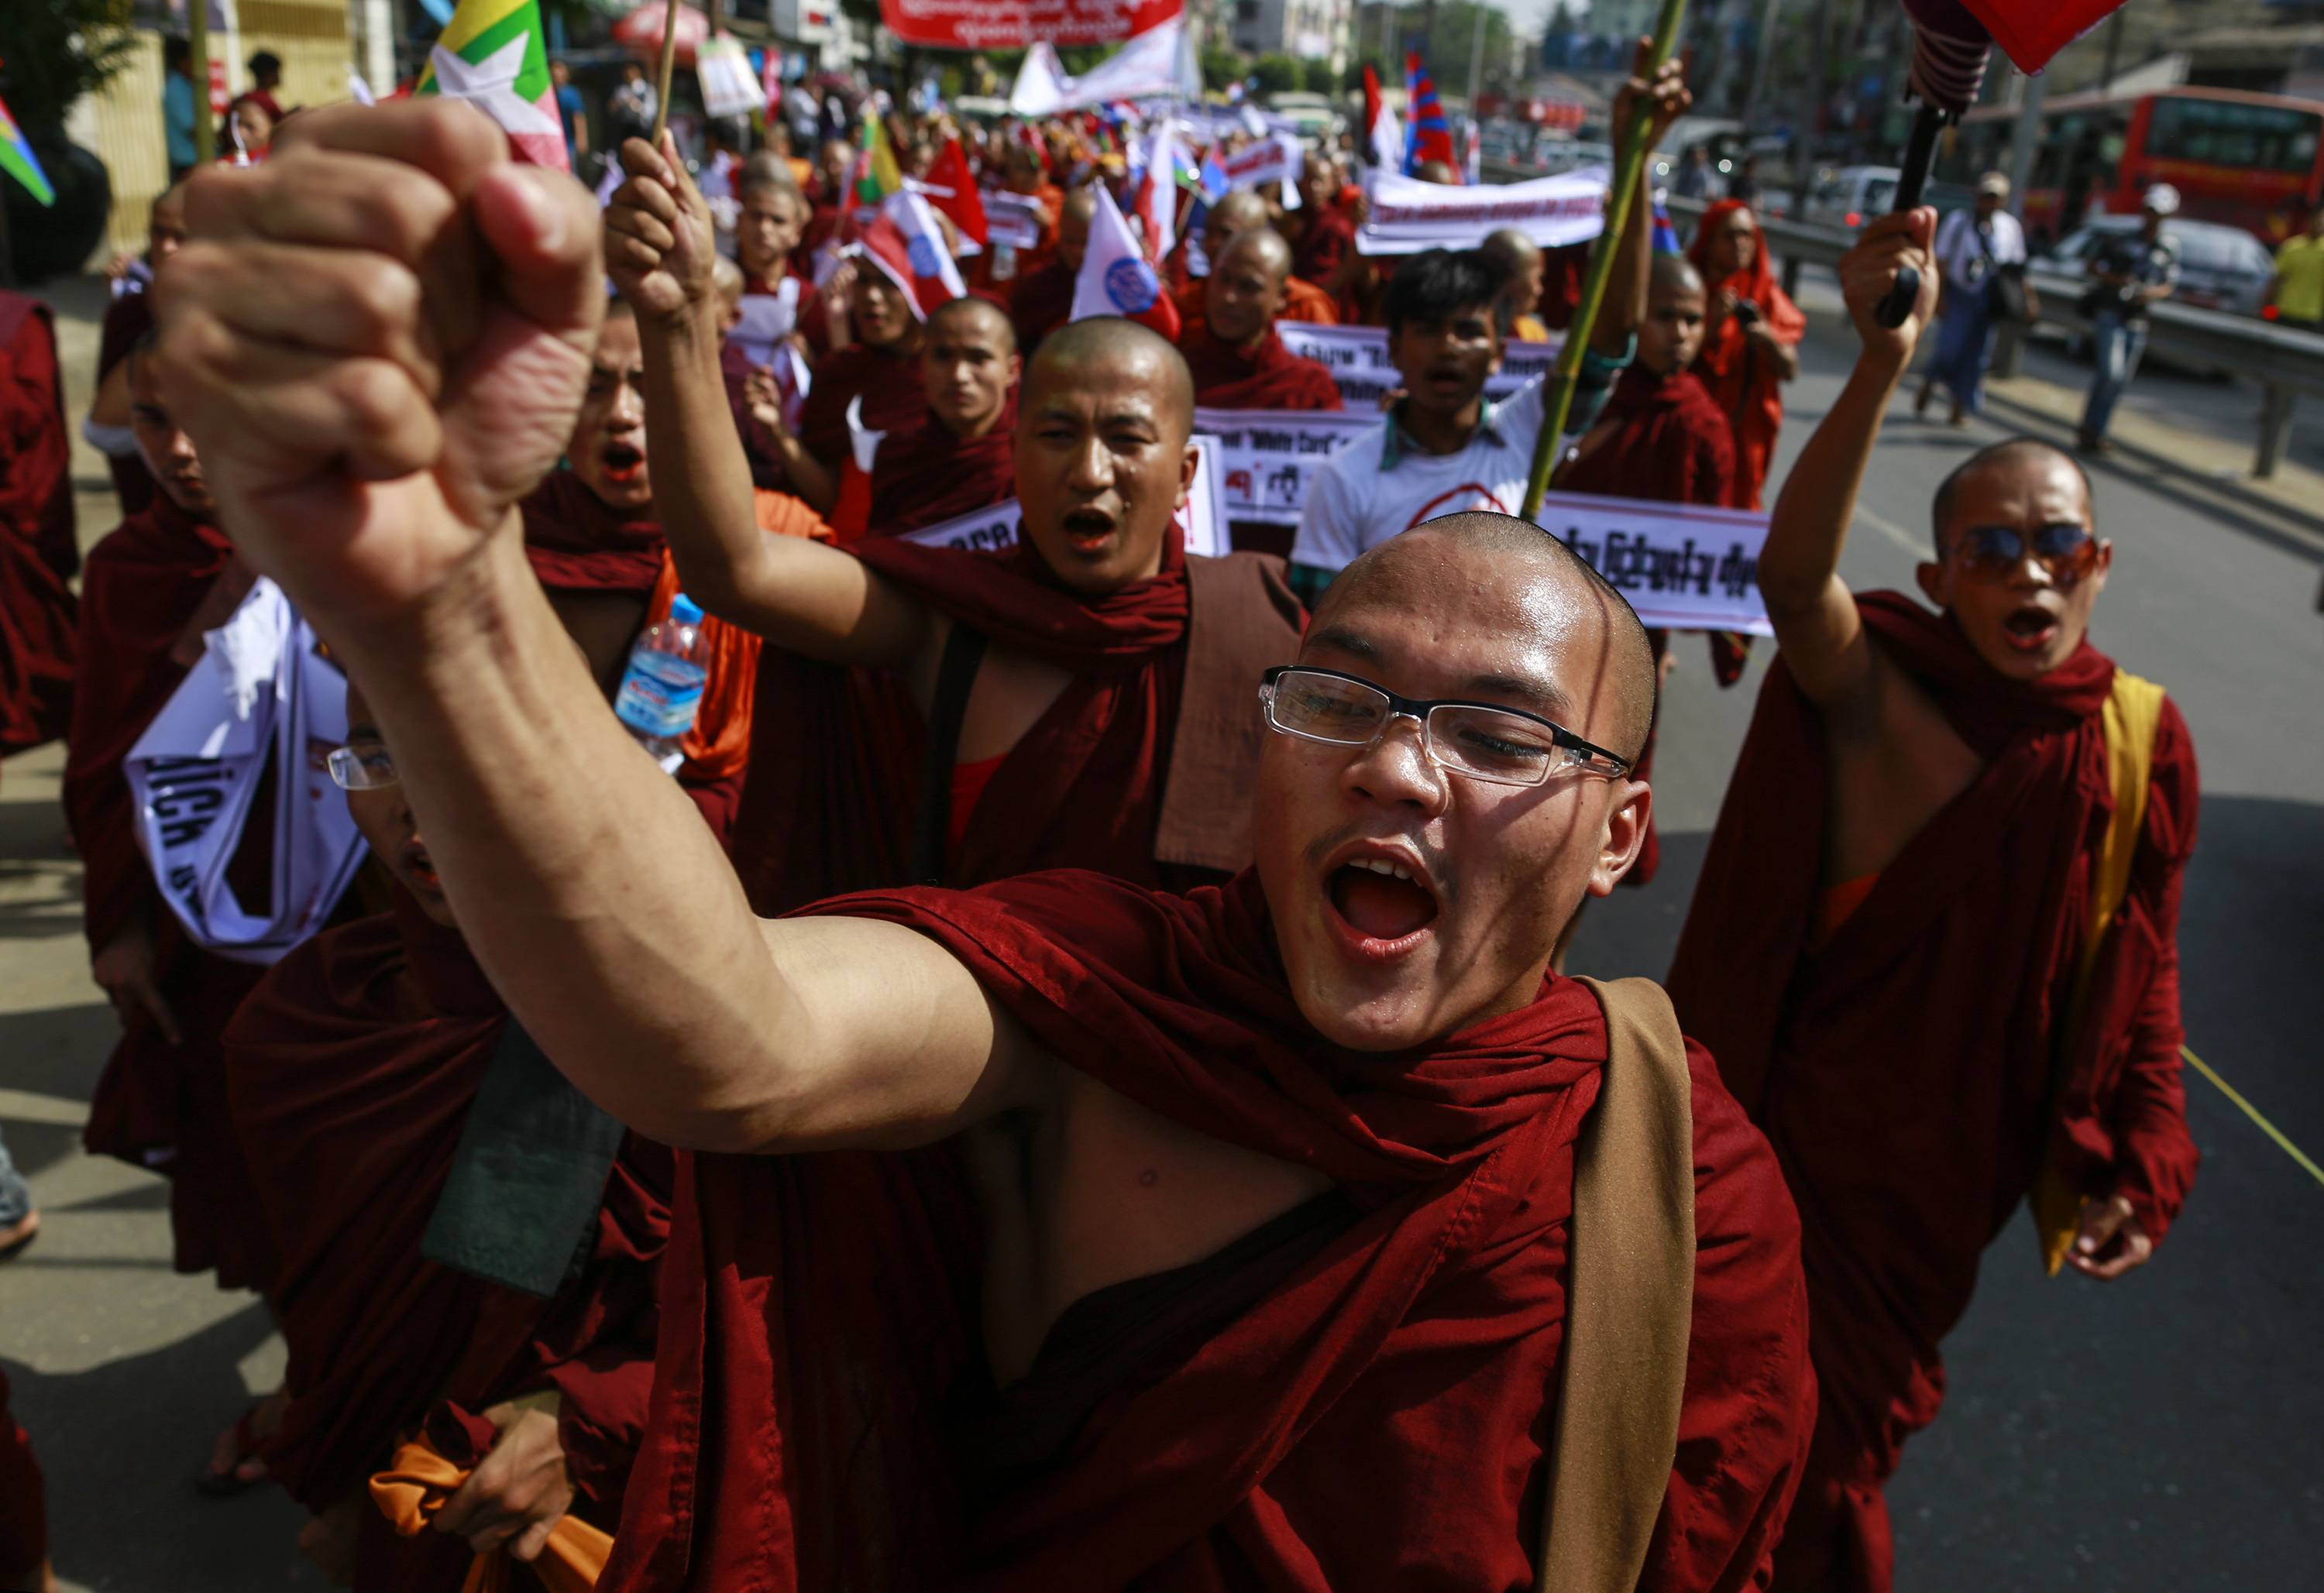 Buddhist monks and other people take part in a protest to demand the revocation of the right of holders of temporary identification cards to vote in Rangoon, Burma, on Feb. 11, 2015